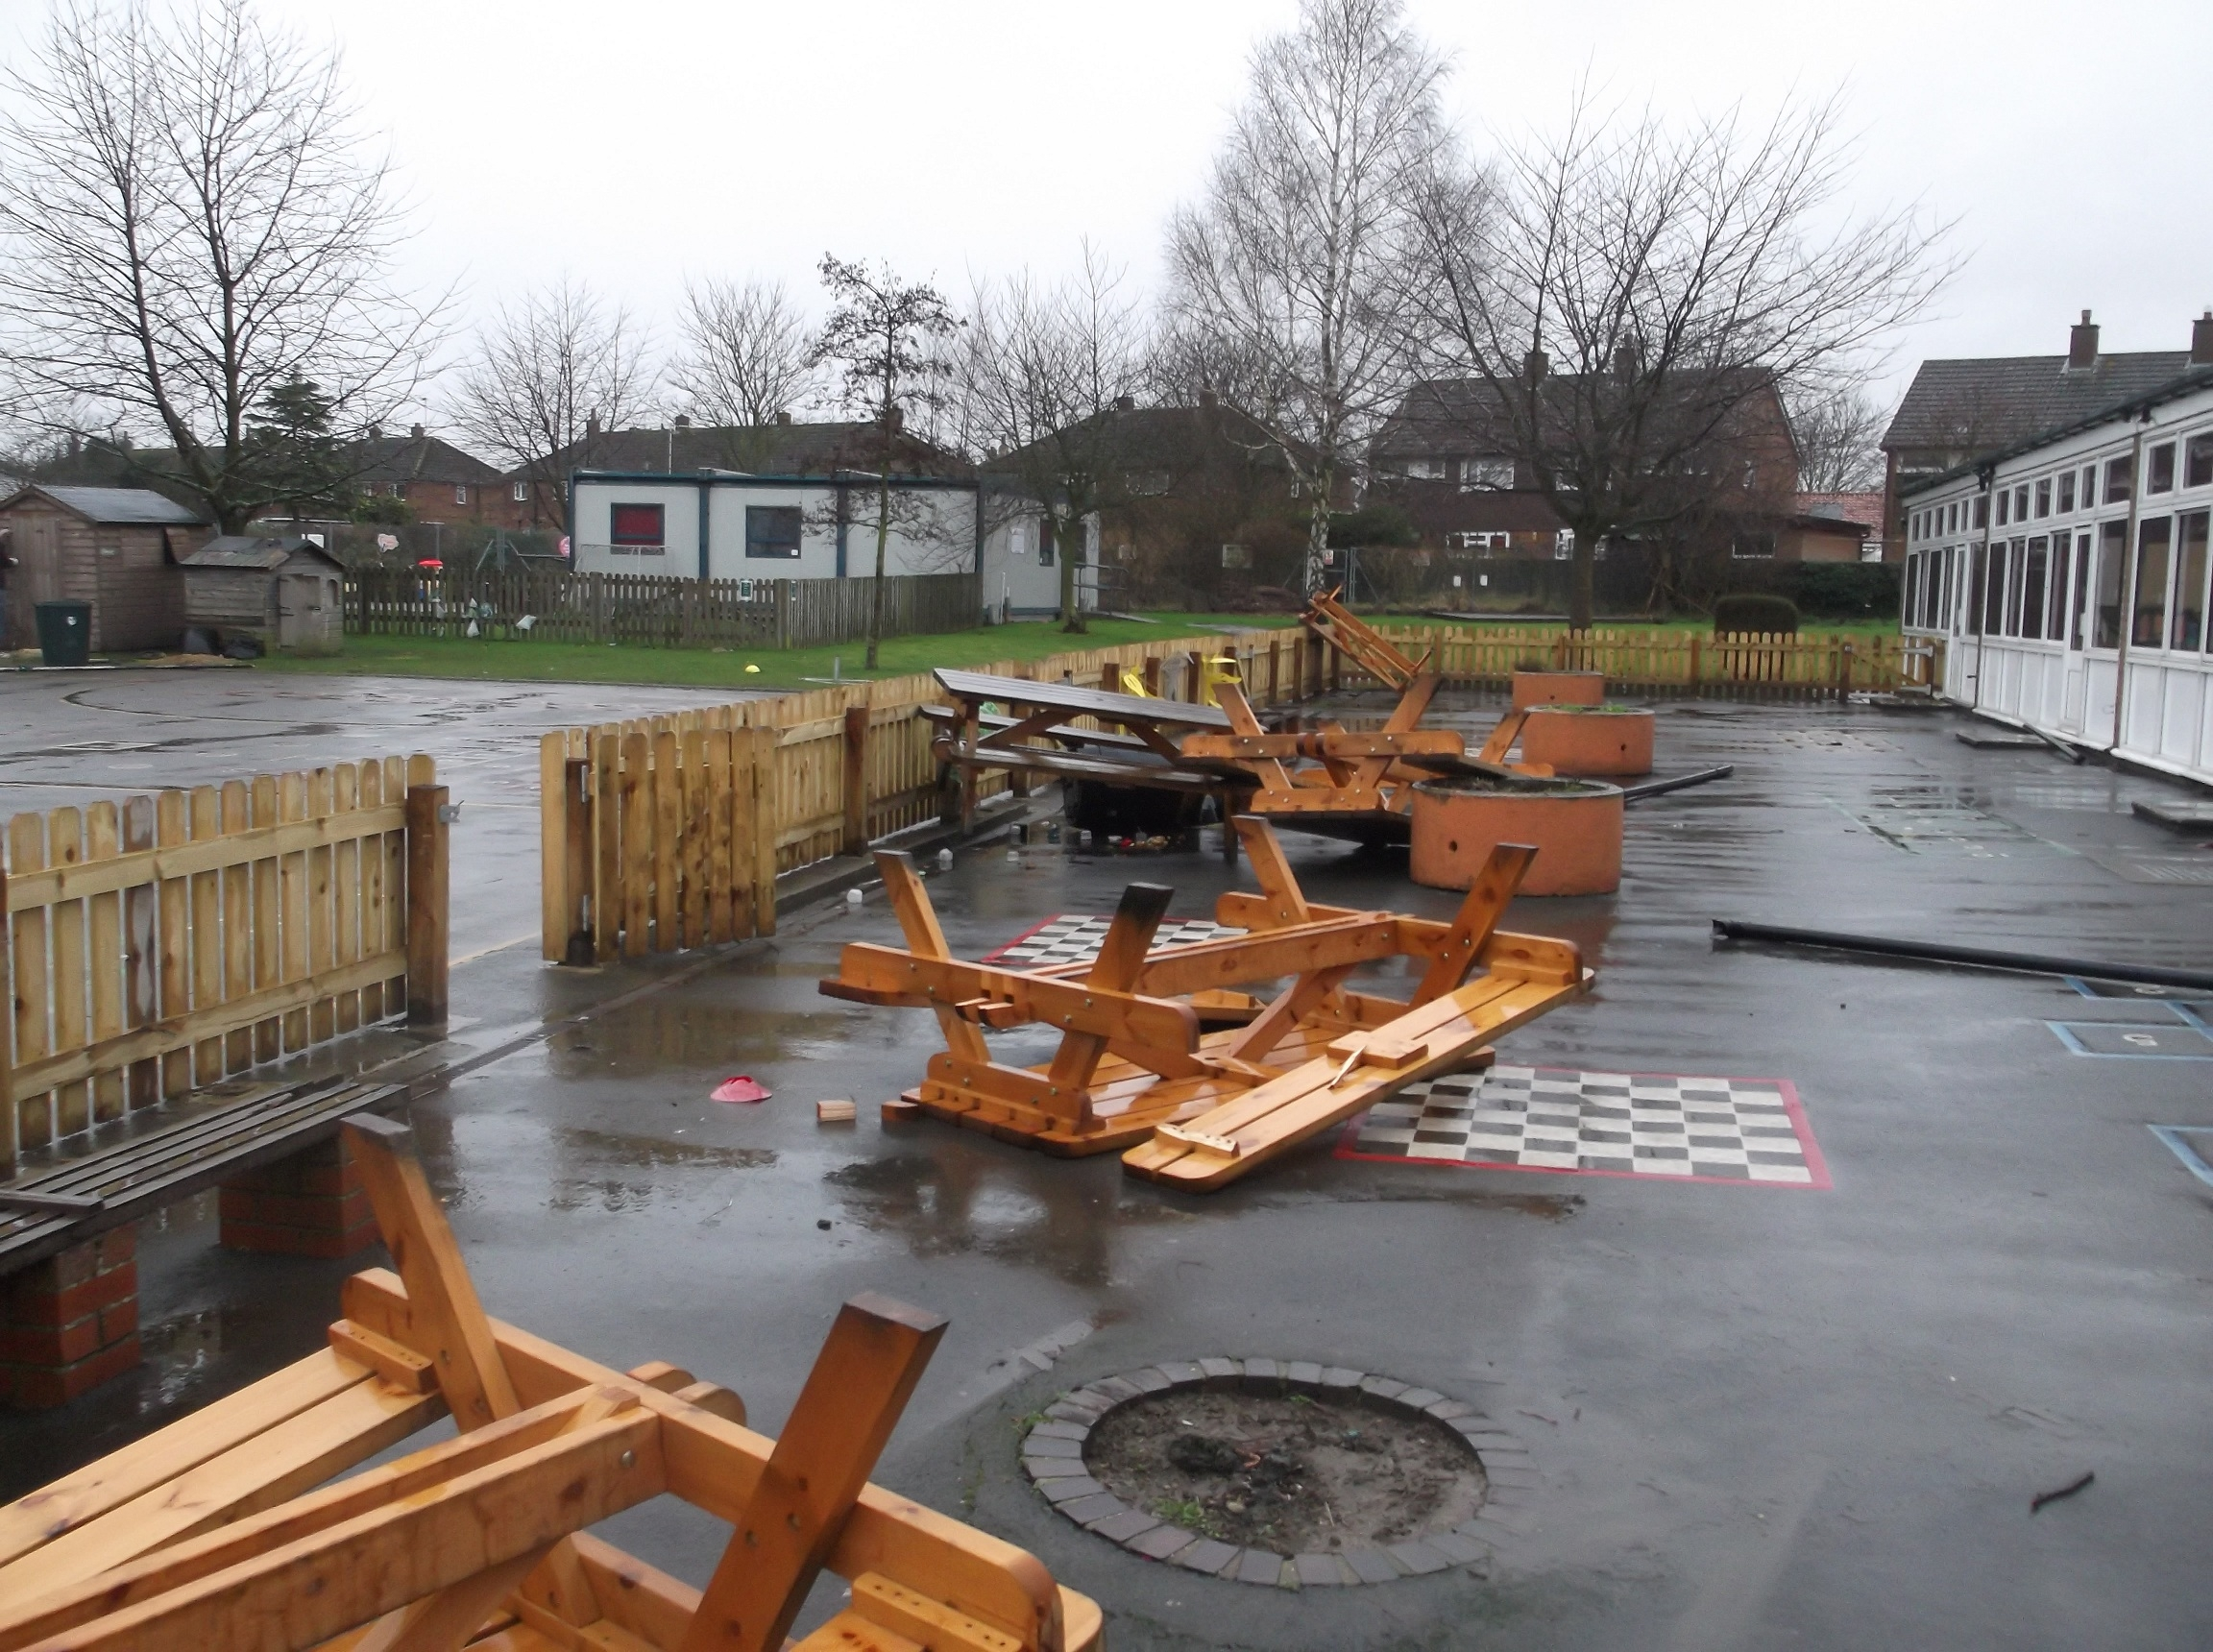 Some of the damage at Malton primary school.